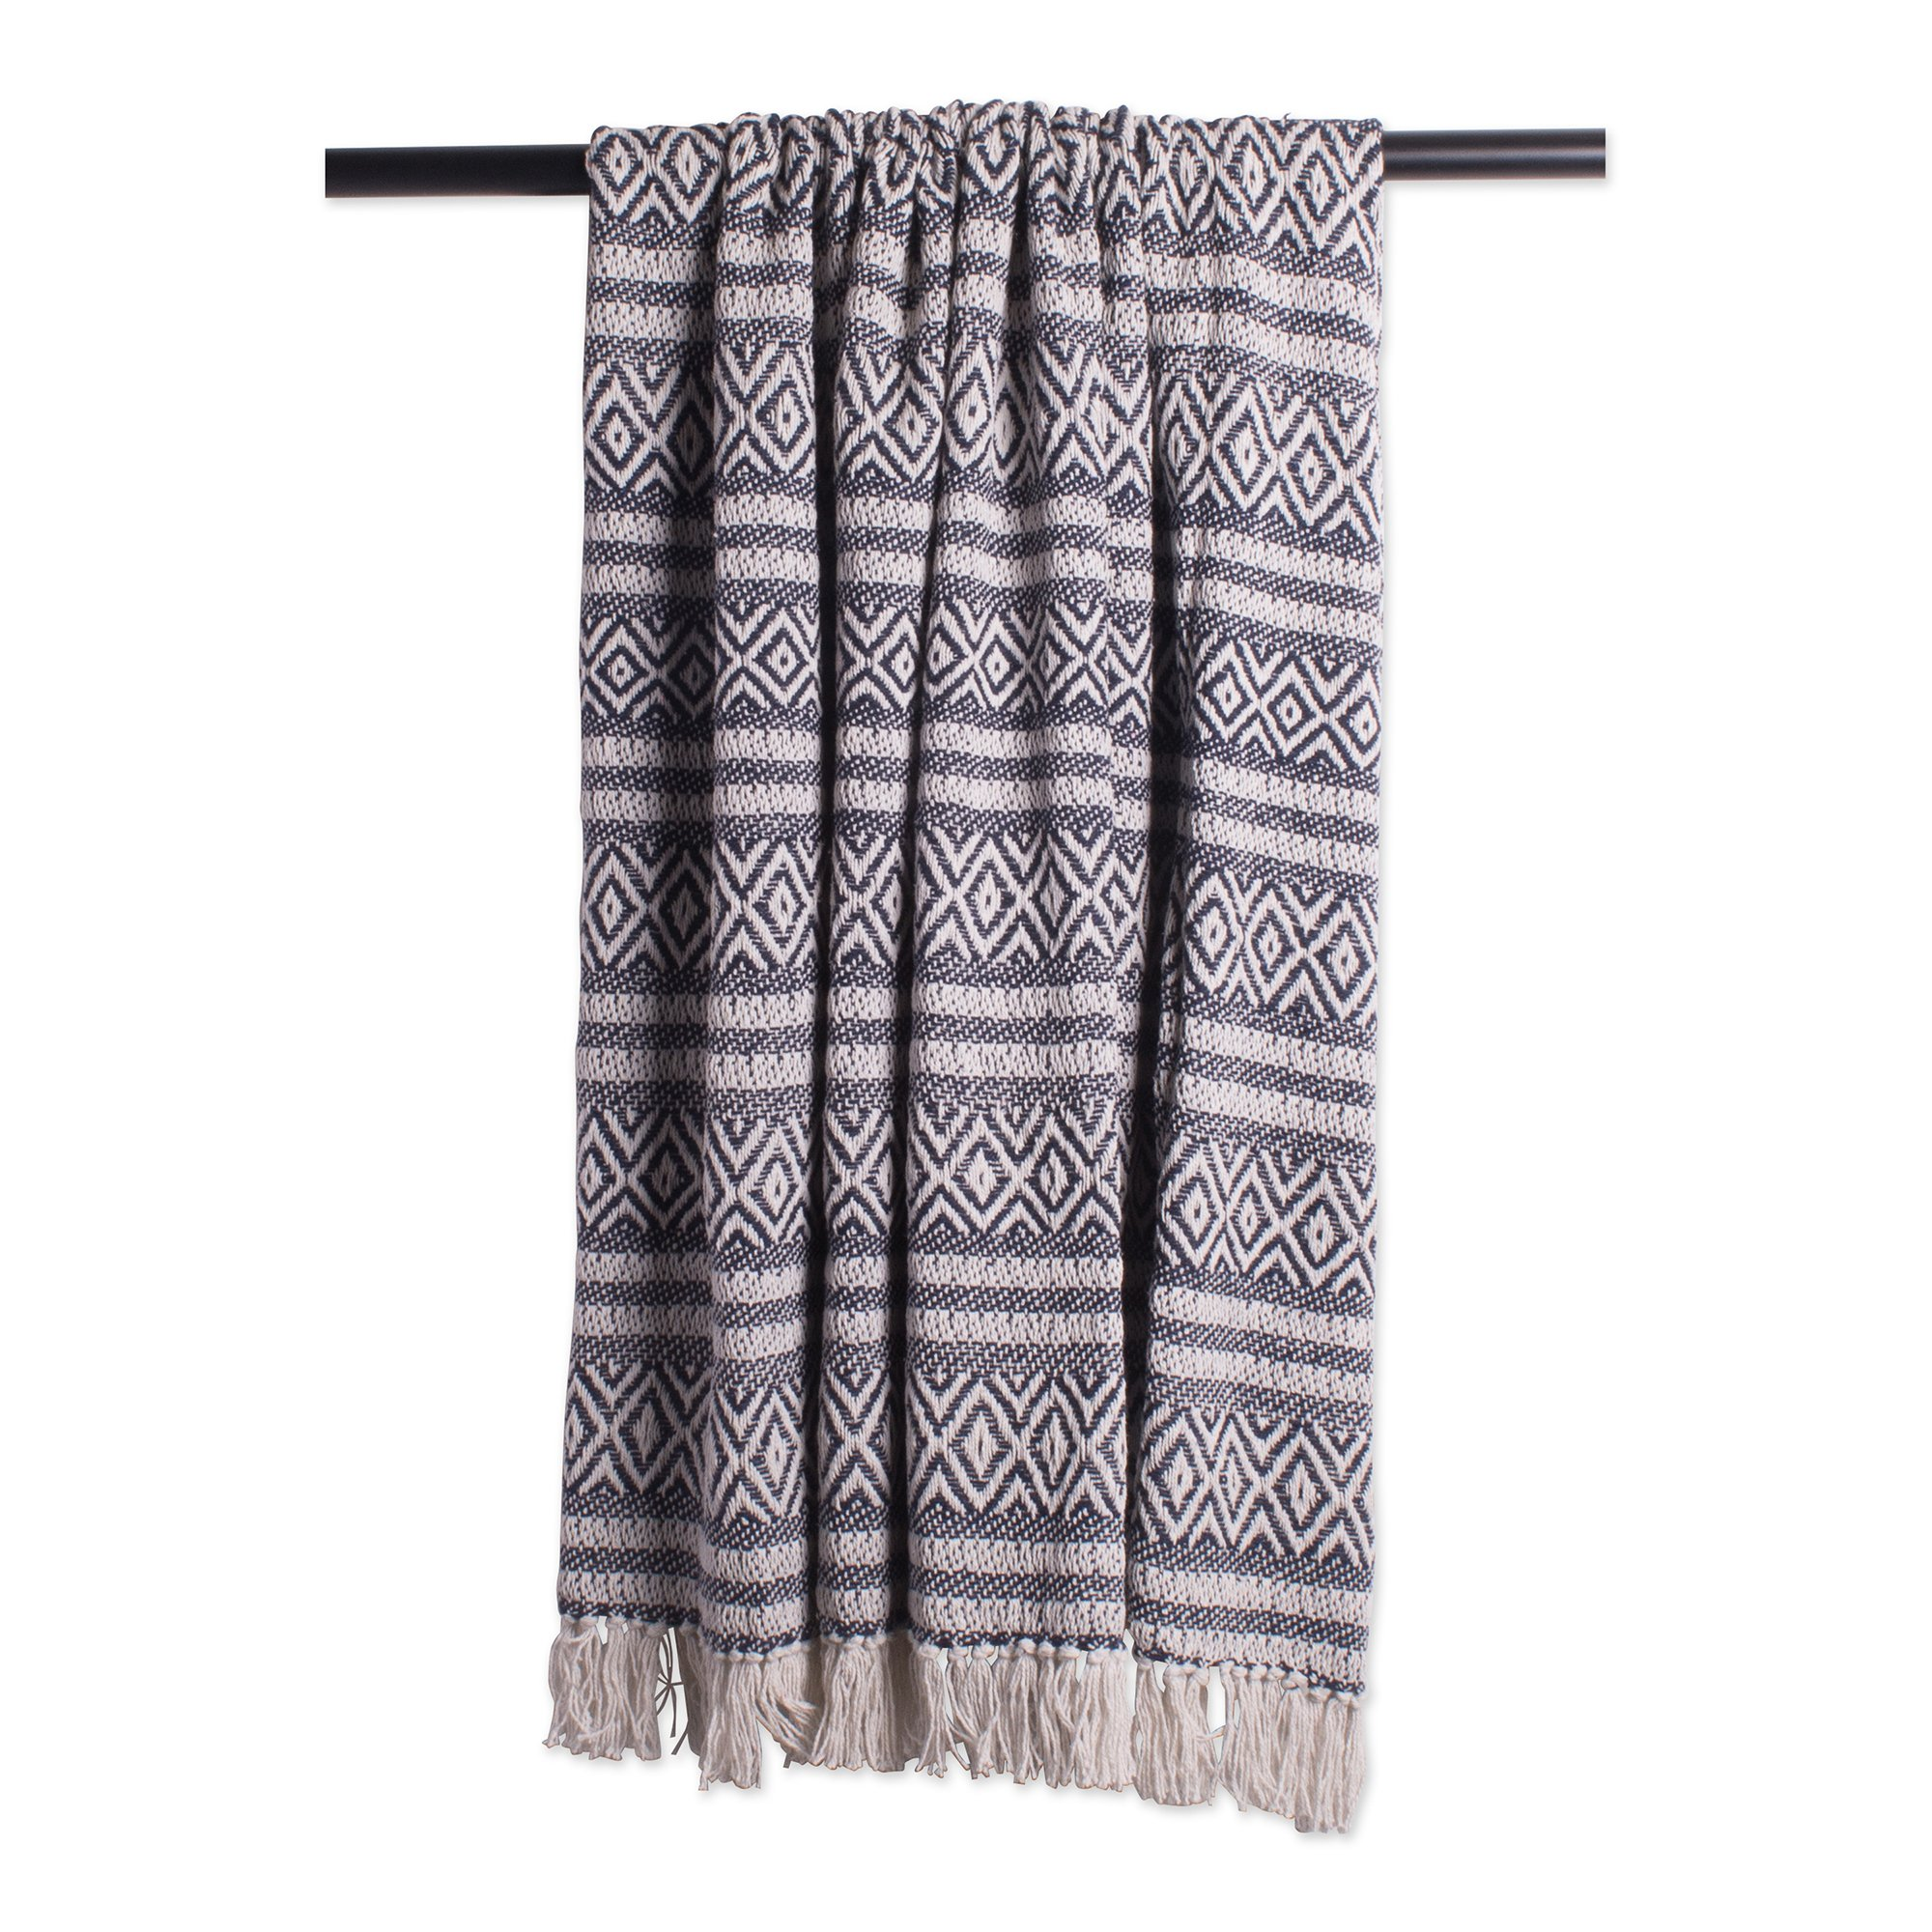 DII Rustic Farmhouse Cotton Adobe Stripe Blanket Throw with Fringe For Chair, Couch, Picnic, Camping, Beach, & Everyday Use , 50 x 60'' - Adobe Stripe Navy